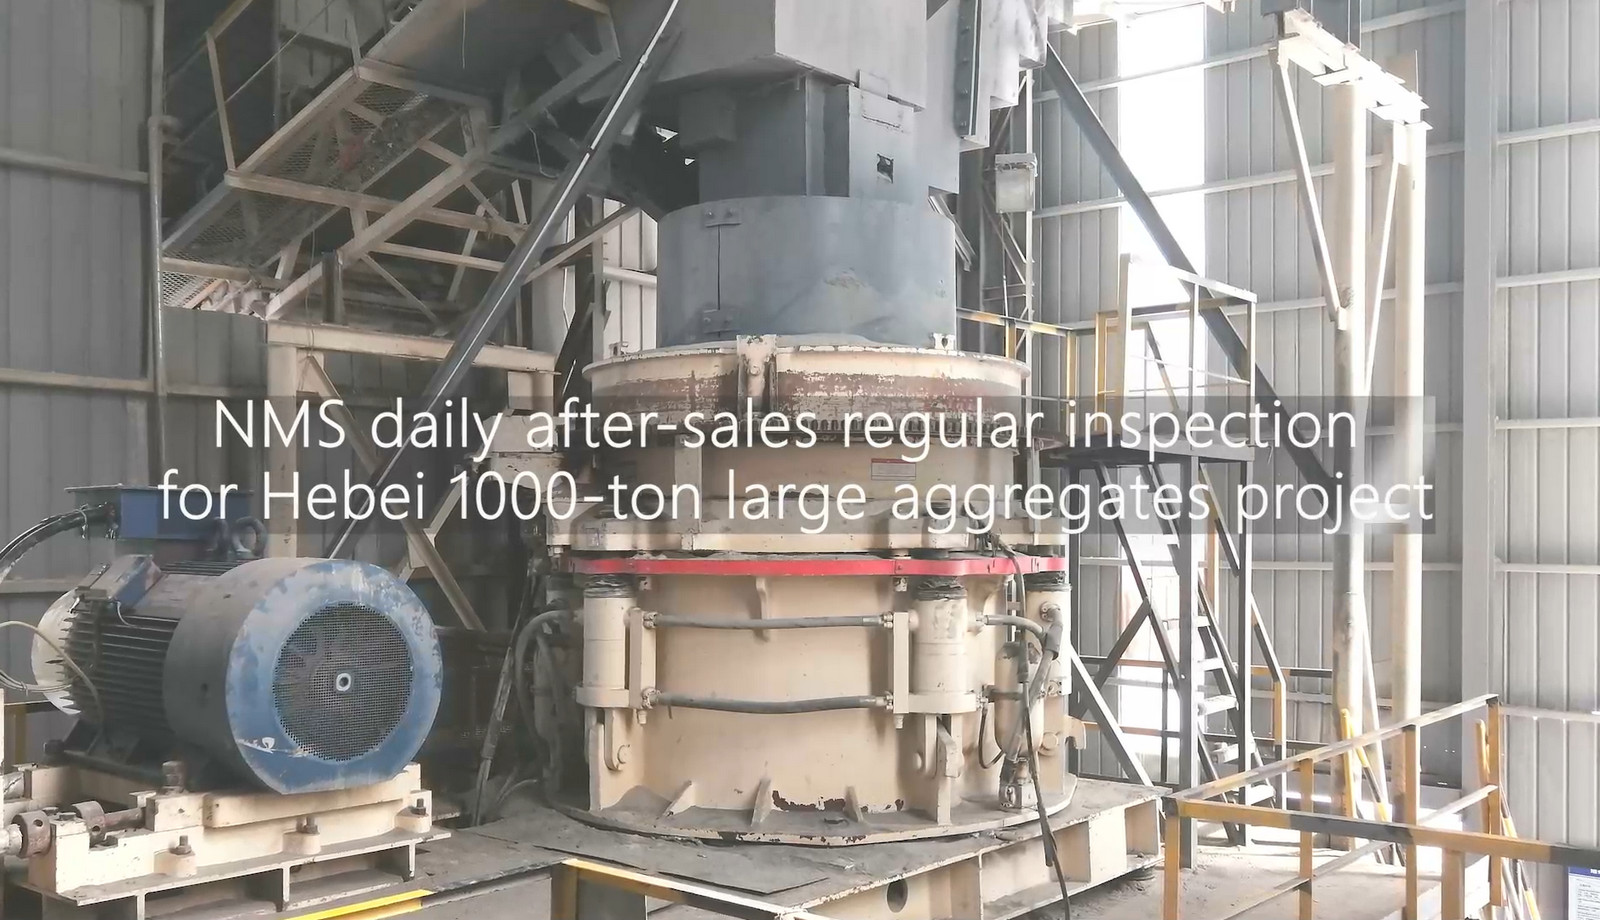 NMS daily after-sales regular inspection for Hebei 1000-ton large aggregates project